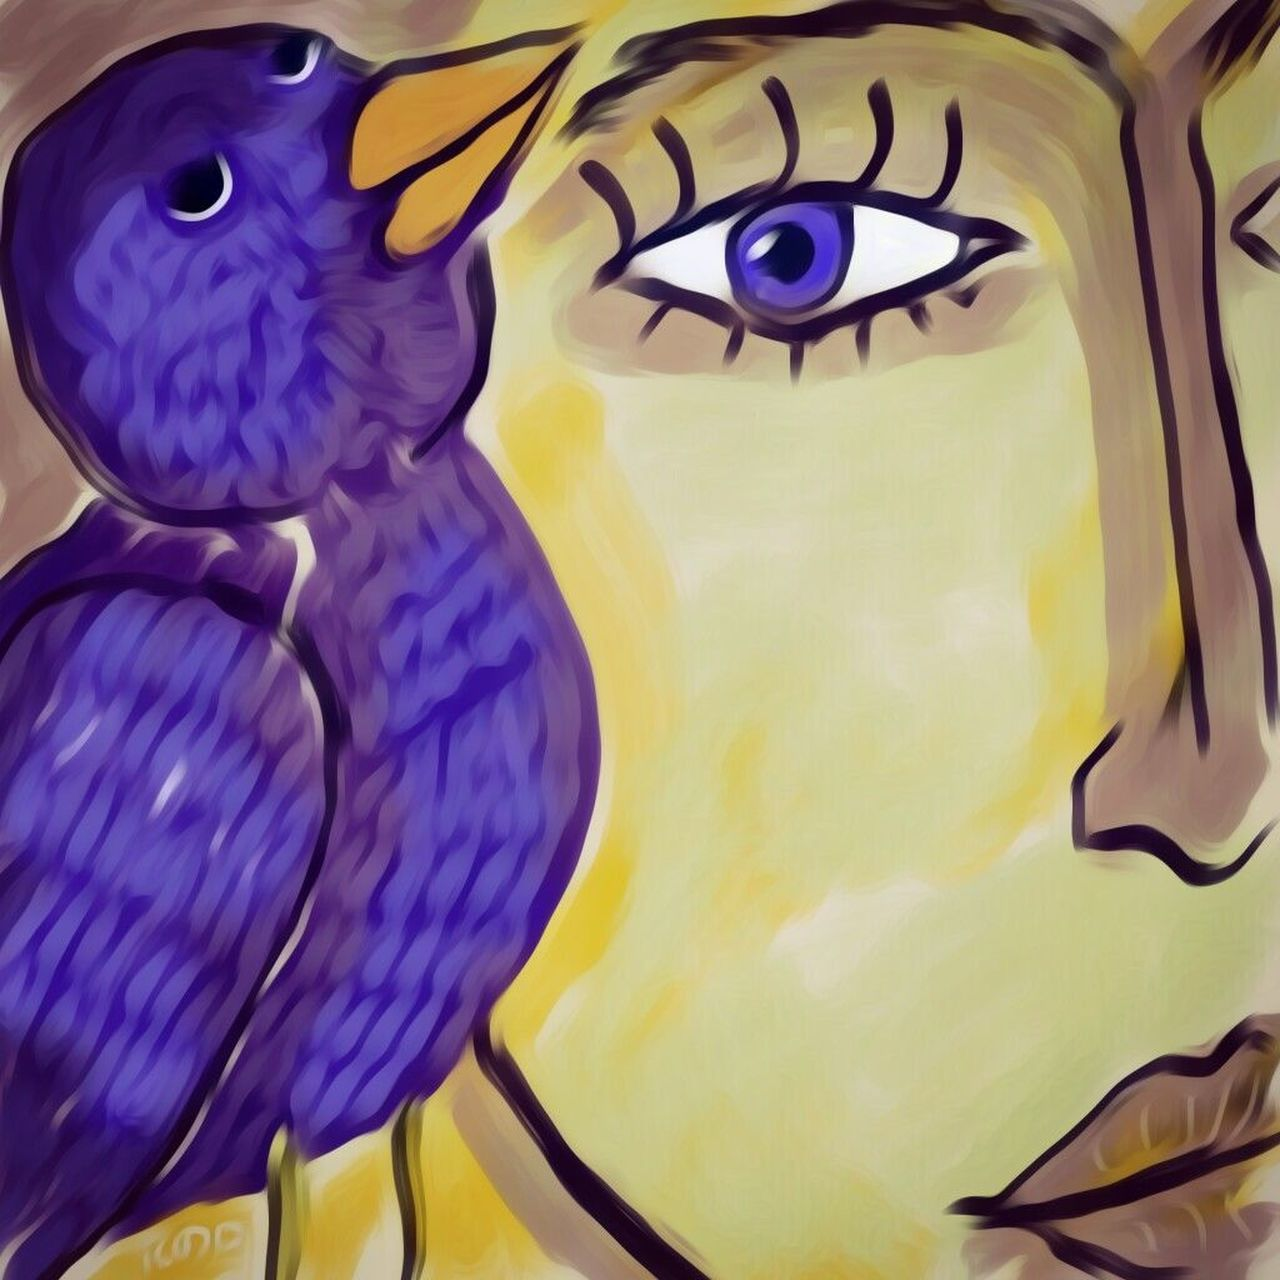 i come in peace Joecocker Make Love Not War Artforpeace Artforfreedom Art, Drawing, Creativity Fine Art Kindness Picsart Check This Out Fineart Rojo Artistic Creativity Sweden Hello World Art And Craft Colorful ArtWork Peace Arts Love Art Vibrant Color Painted Image